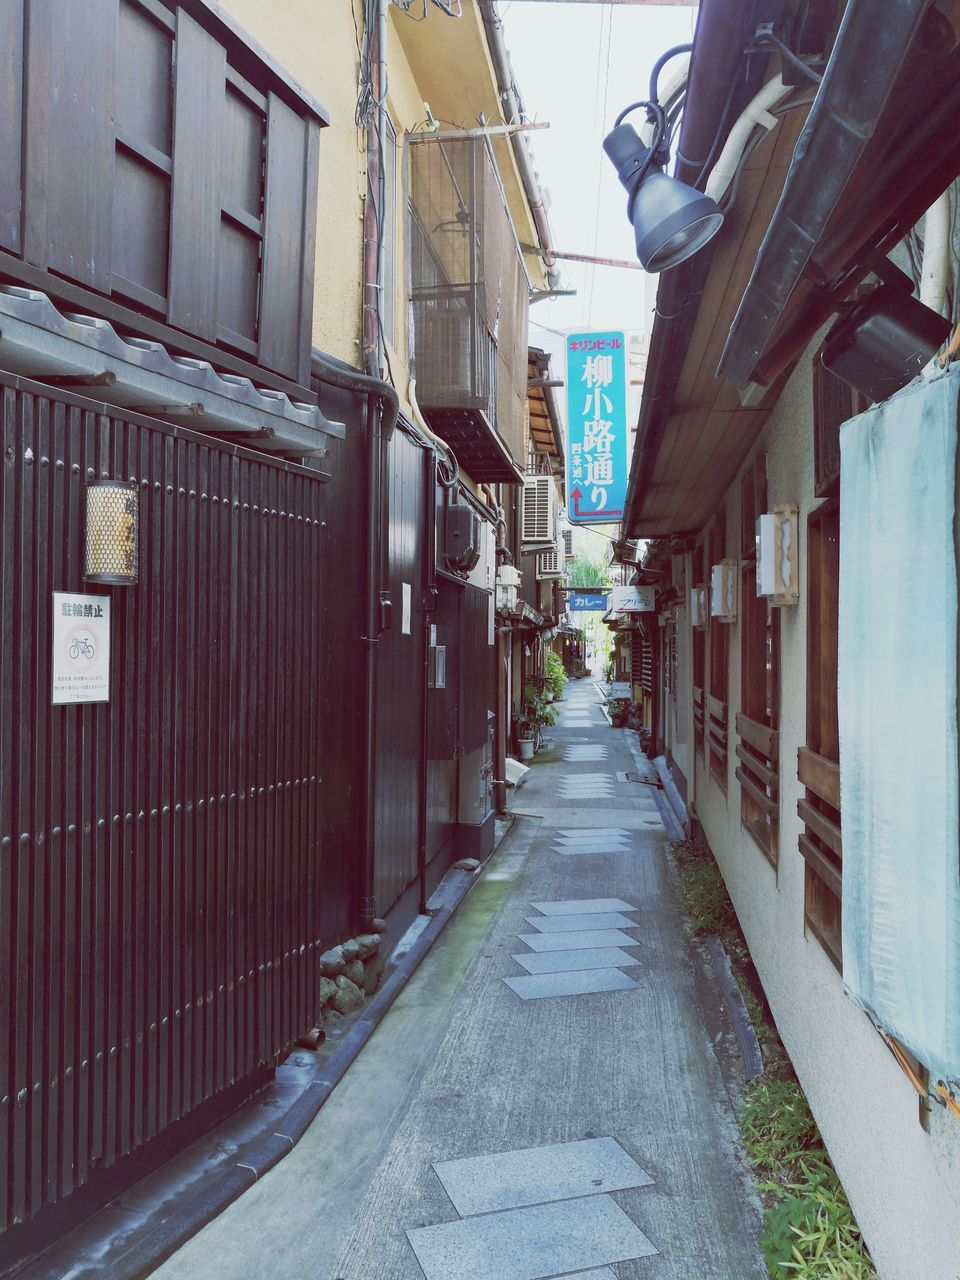 architecture, built structure, building exterior, the way forward, alley, city, no people, day, outdoors